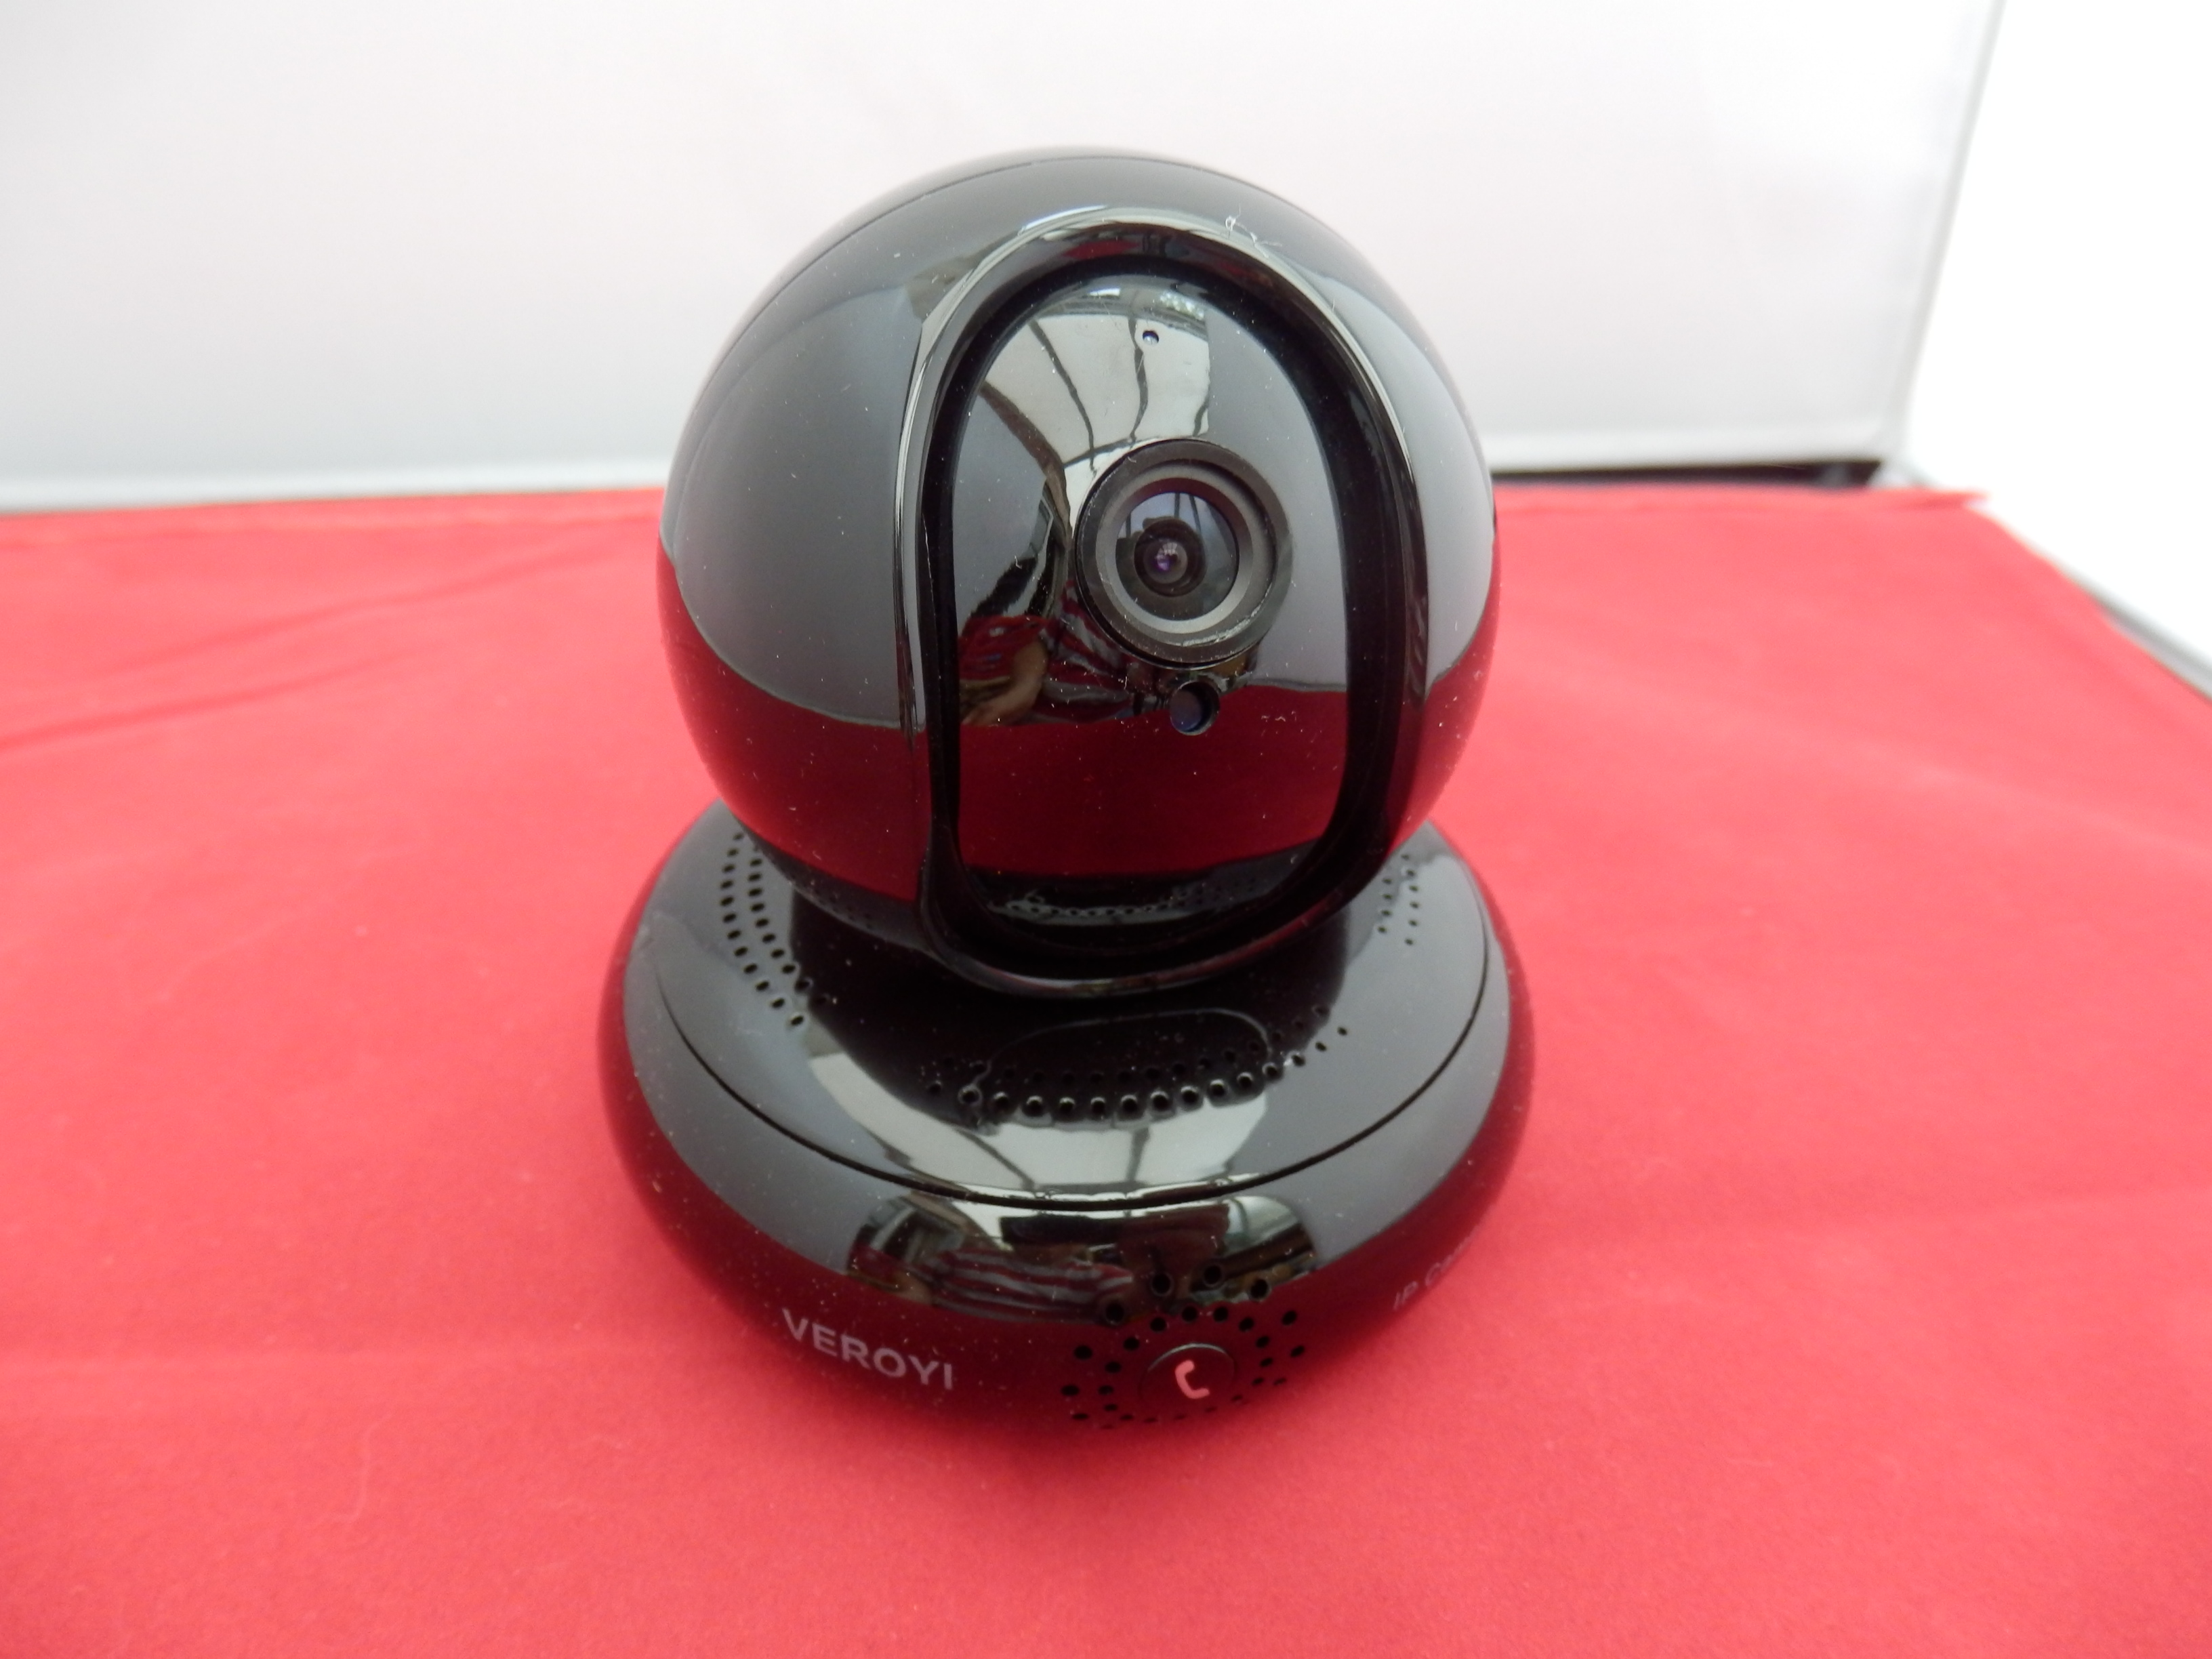 Veroyi Full HD 1080P IP Wireless Home Security Camera, 120° Wide Angle, Two Way Audio Reverse Call and Night Vision